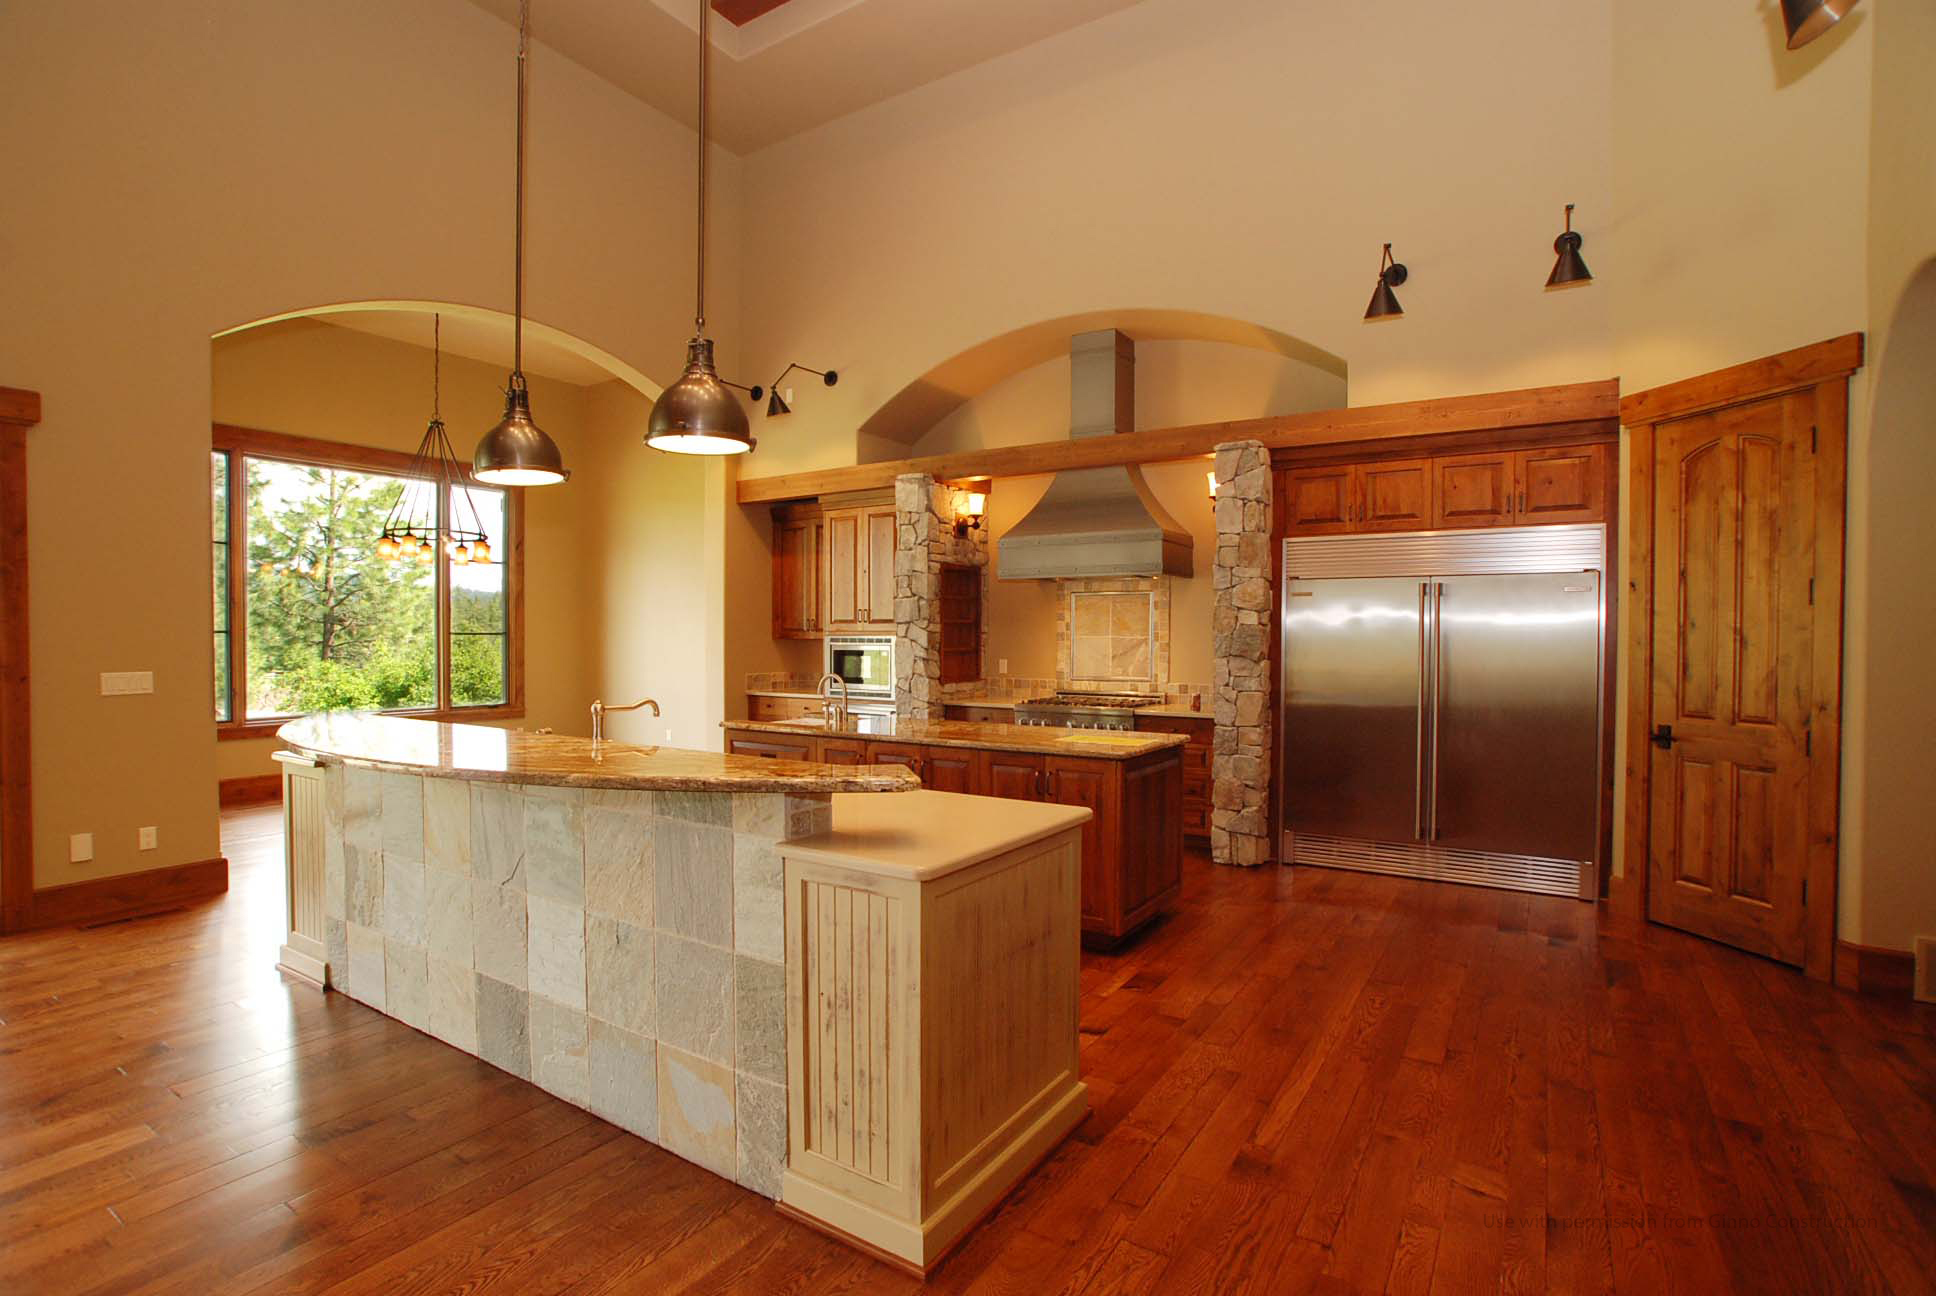 Gozzer Ranch Lot 50 Kitchen by Matt Fisher of Shelter Associates